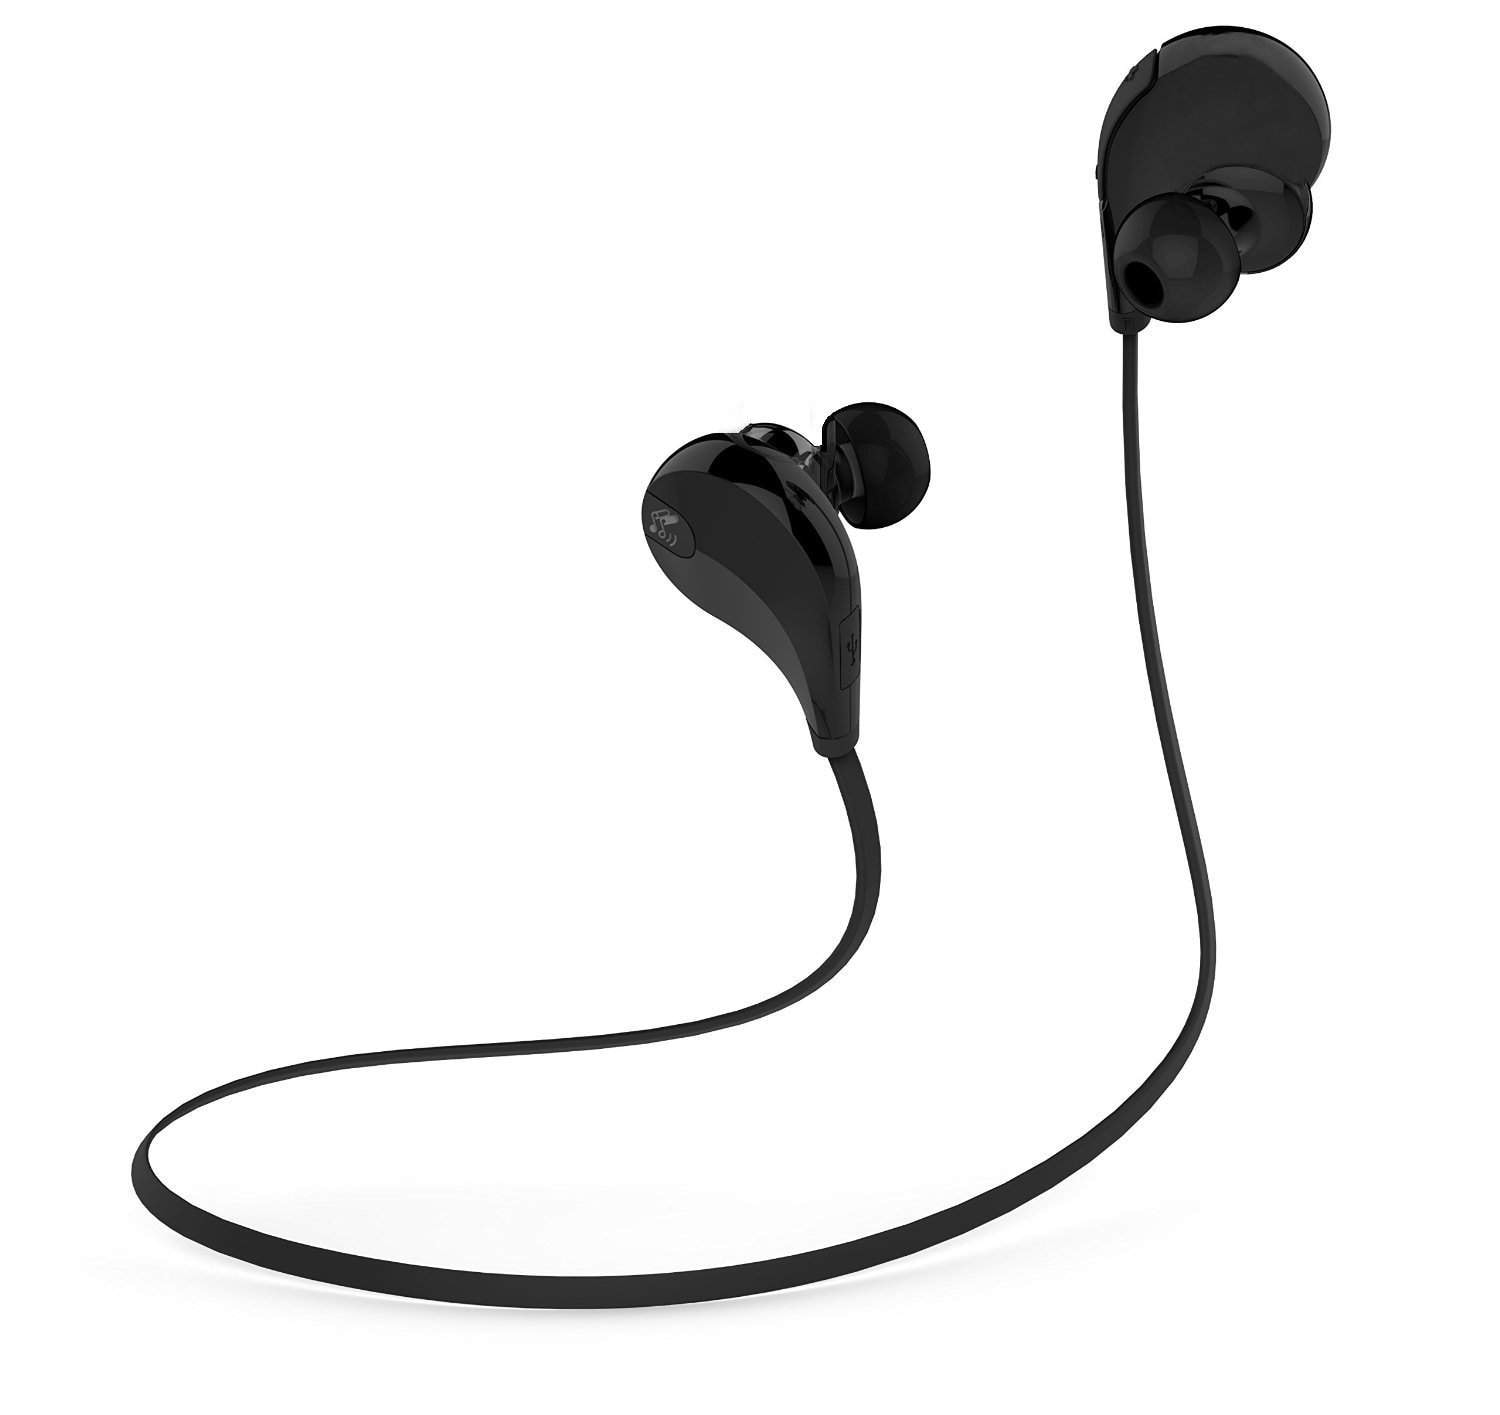 Buy Soundpeats Qy7 In Ear Headphone Black Features Price Reviews Online In India Justdial